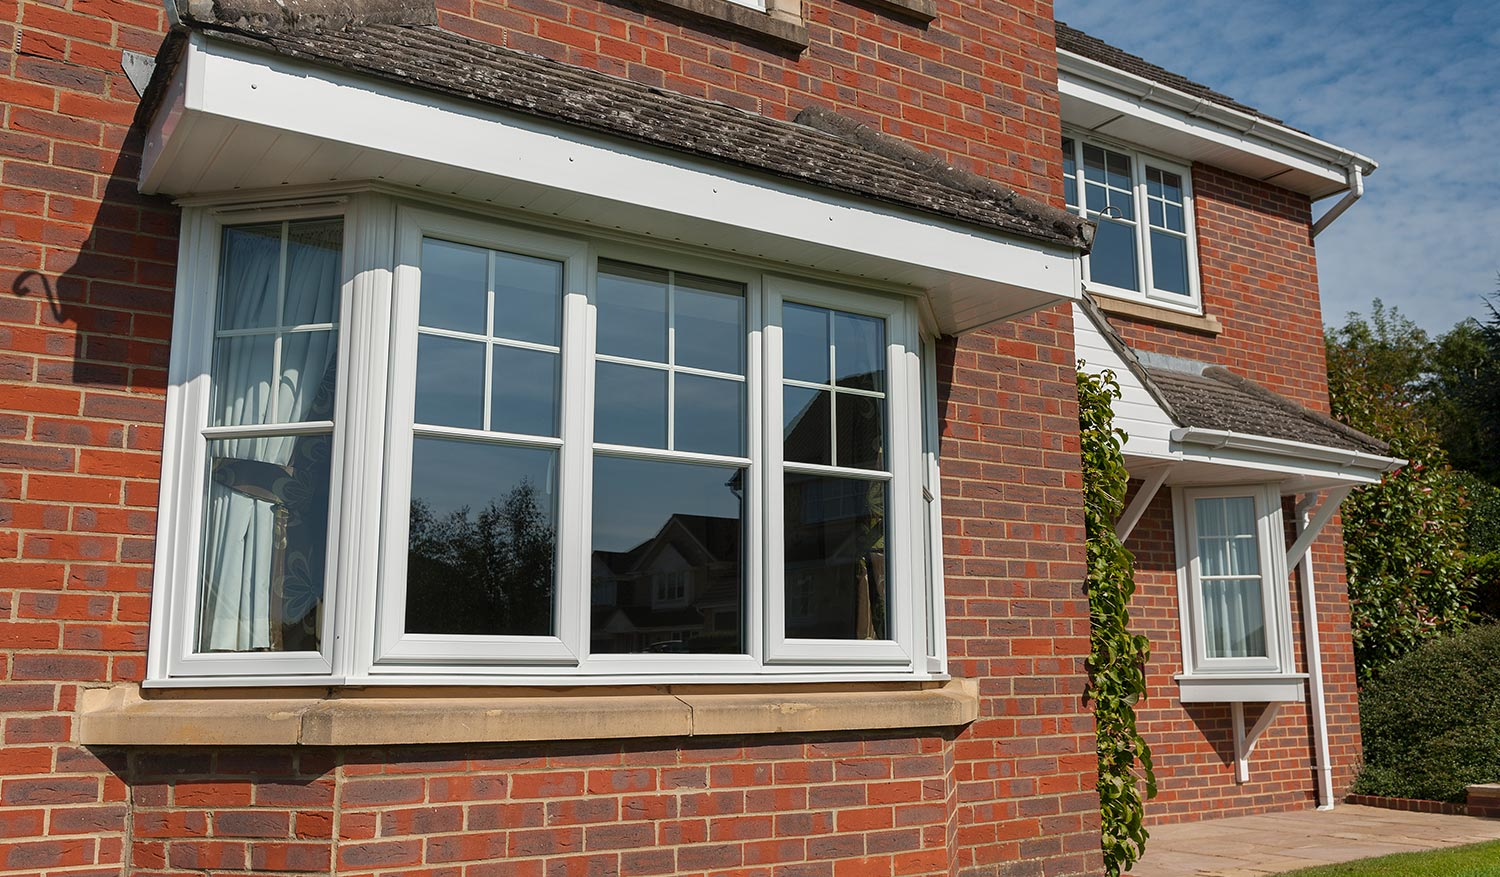 Heritage uPVC window in white with georgian bars